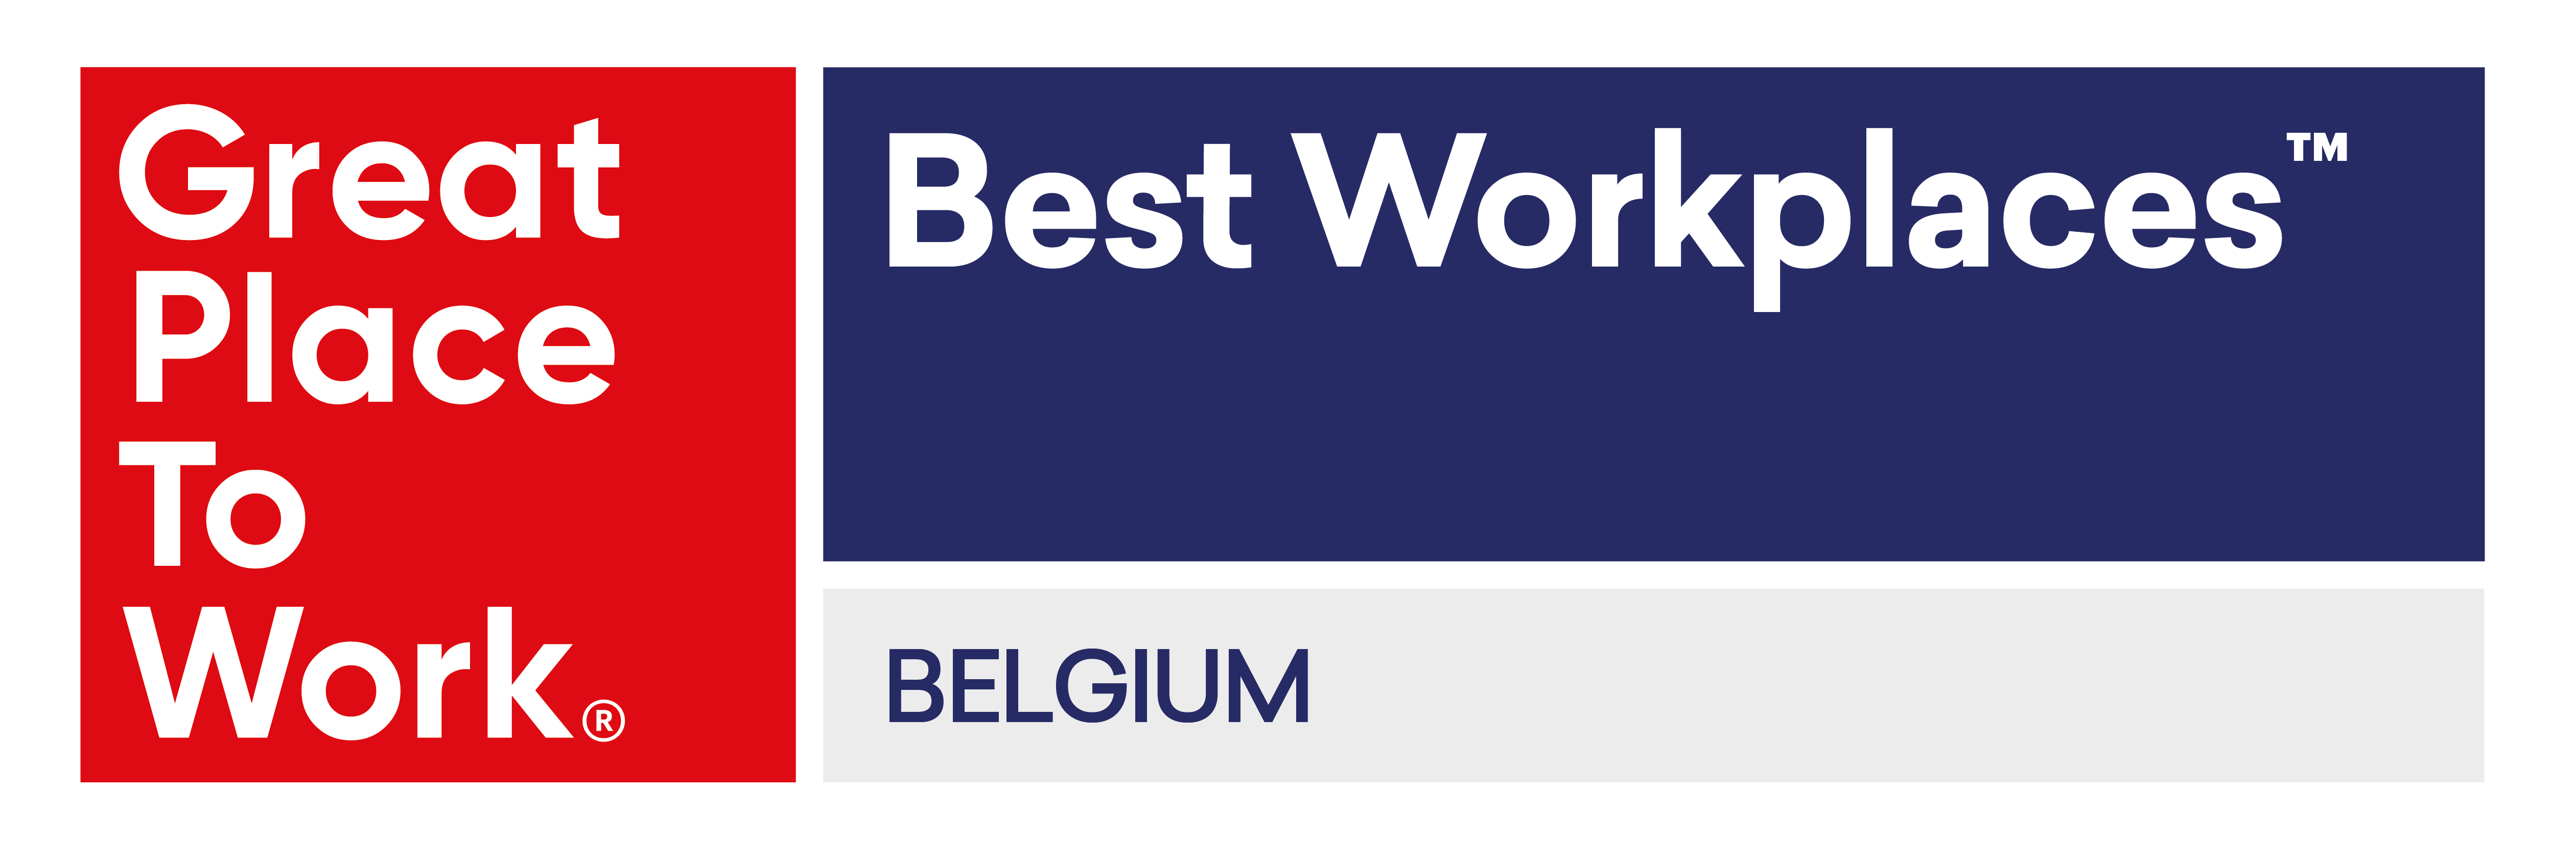 Best Workplaces BELGIUM WITHOUT DATE 01